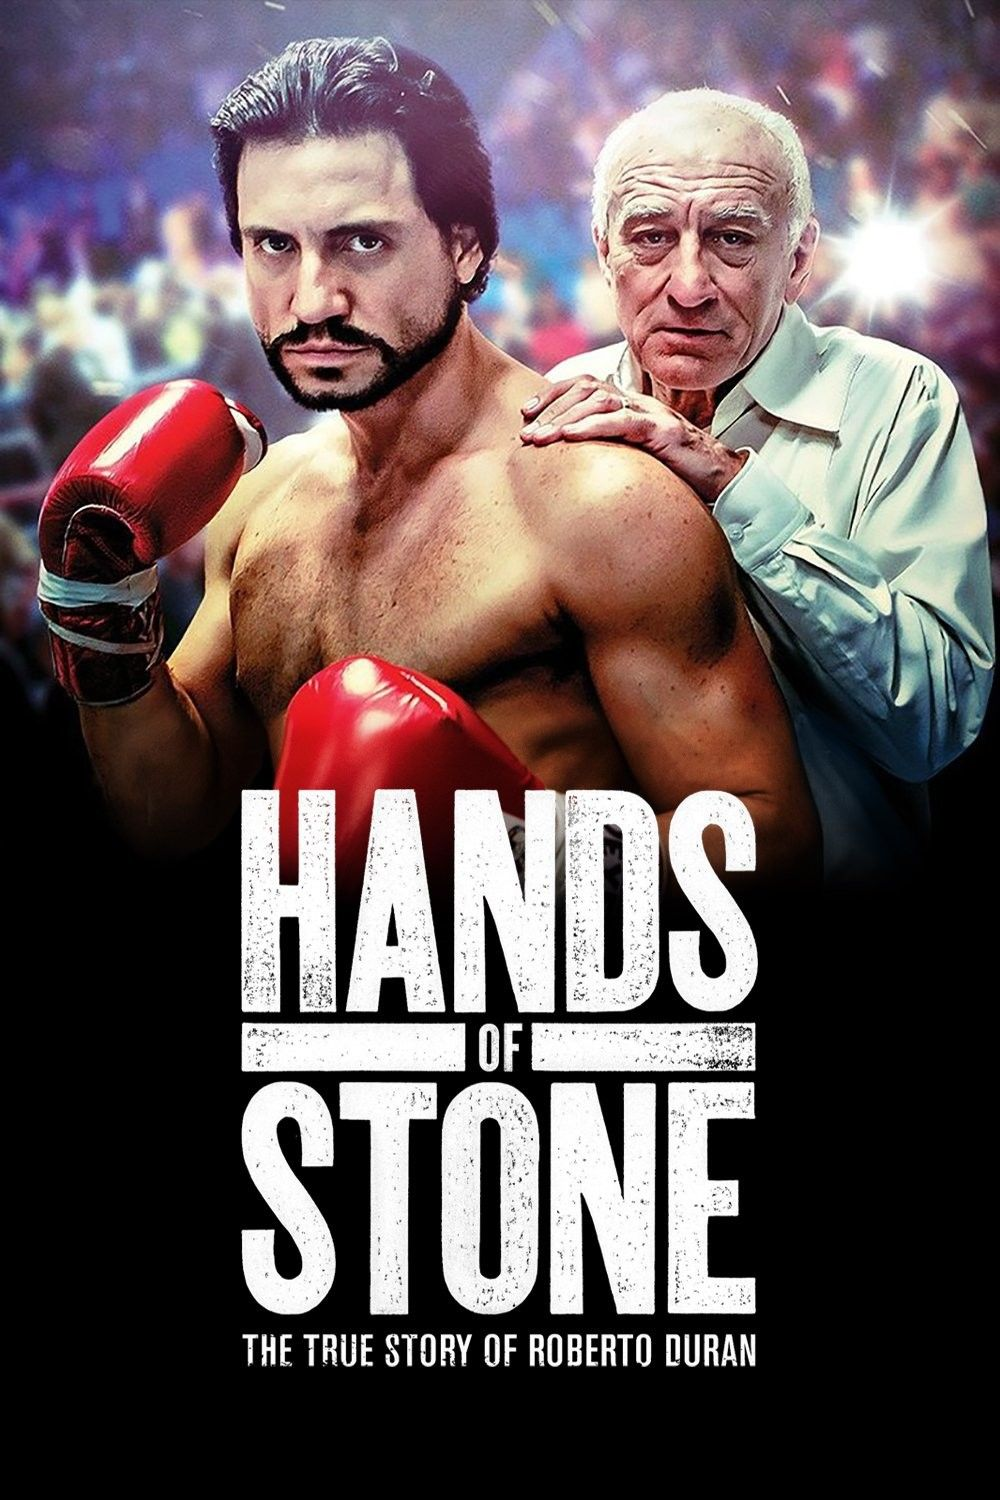 Hands Of Stone 2016 Watch Movies Free Online Watch Hands Of Stone Free Online Handsofst Full Movies Online Free Free Movies Online Streaming Movies Free